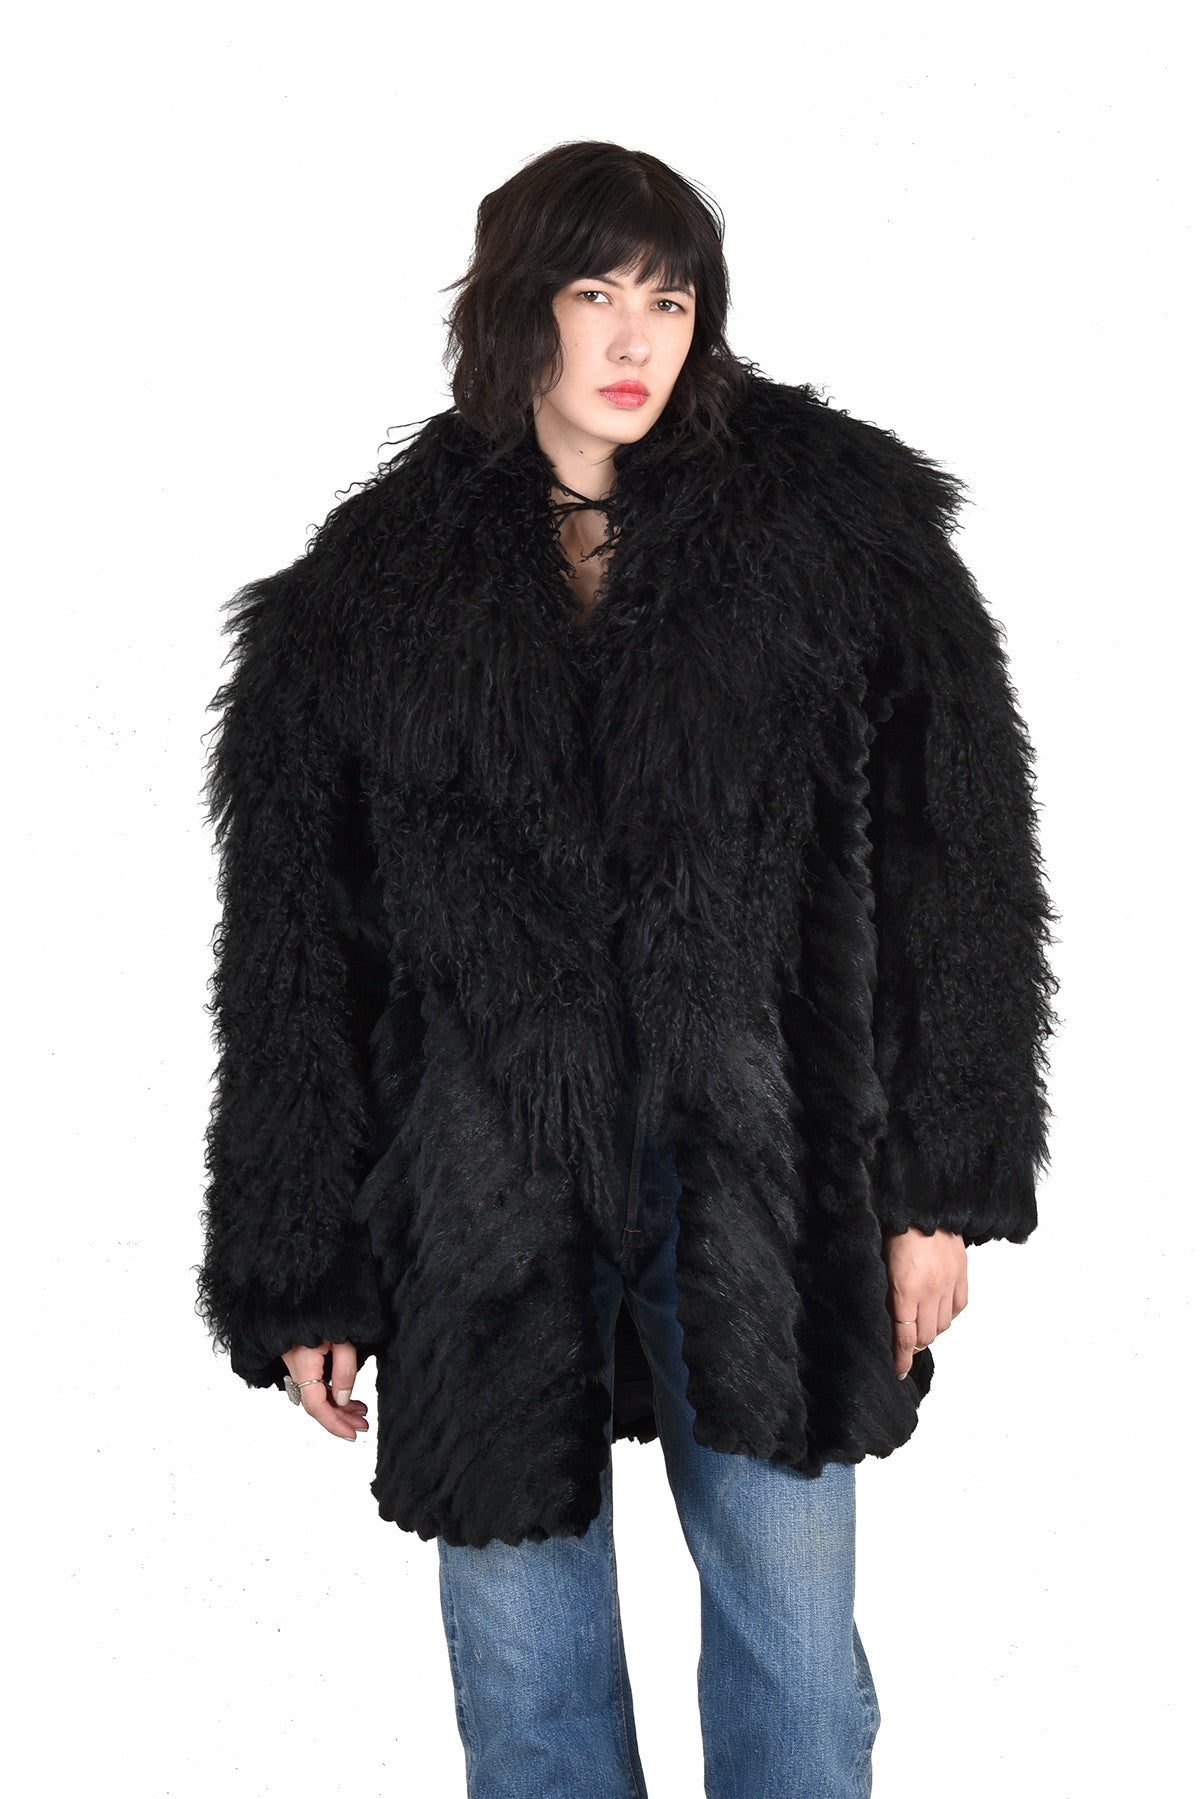 791b49fca1f71 Adolfo Super Shaggy Black Mongolian Lamb   Rabbit Fur Coat